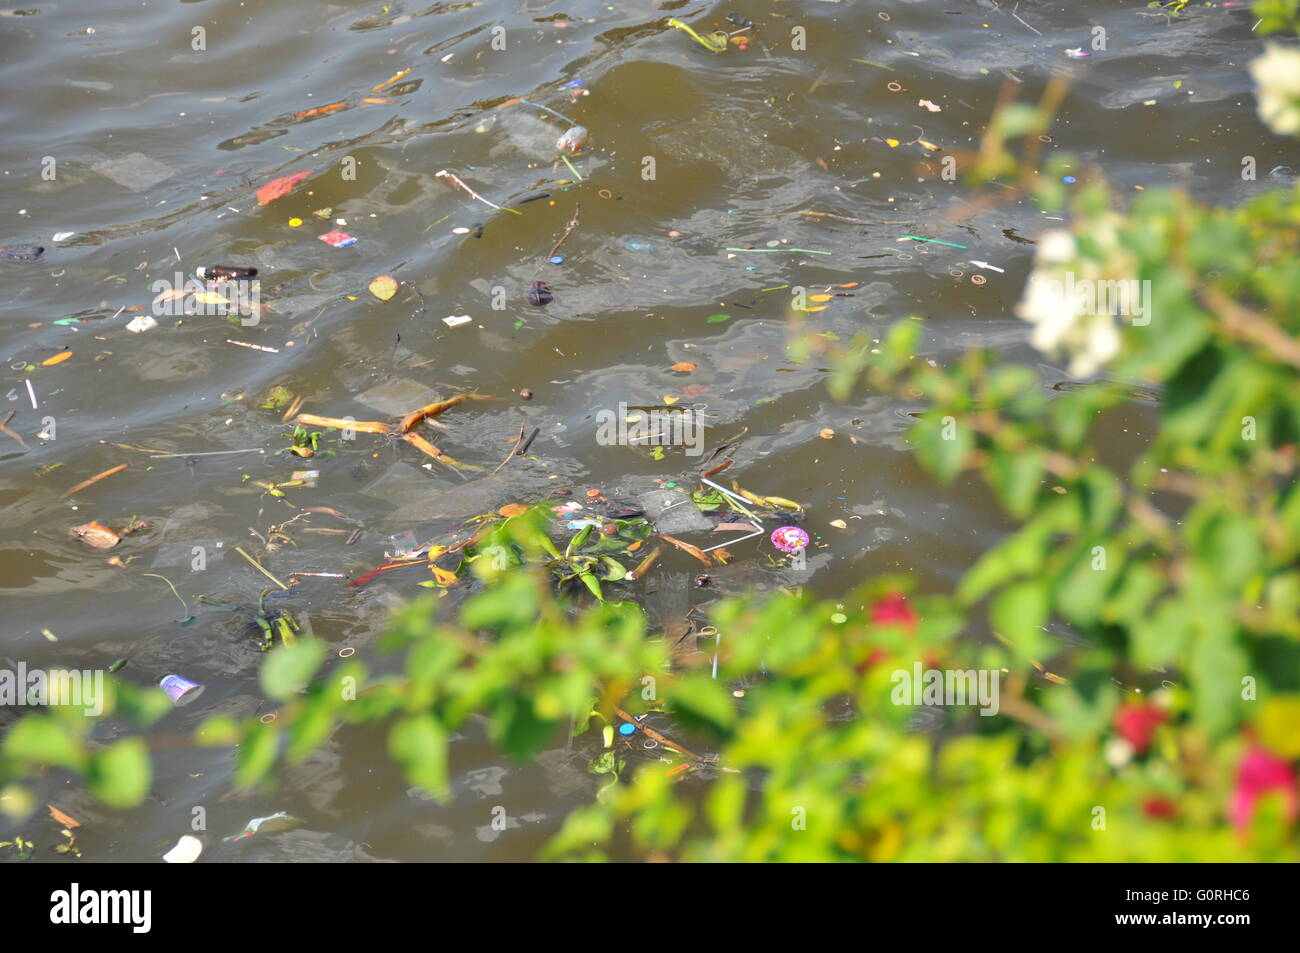 Pollution in the river Chao Phraya Bangkok Thailand - Stock Image